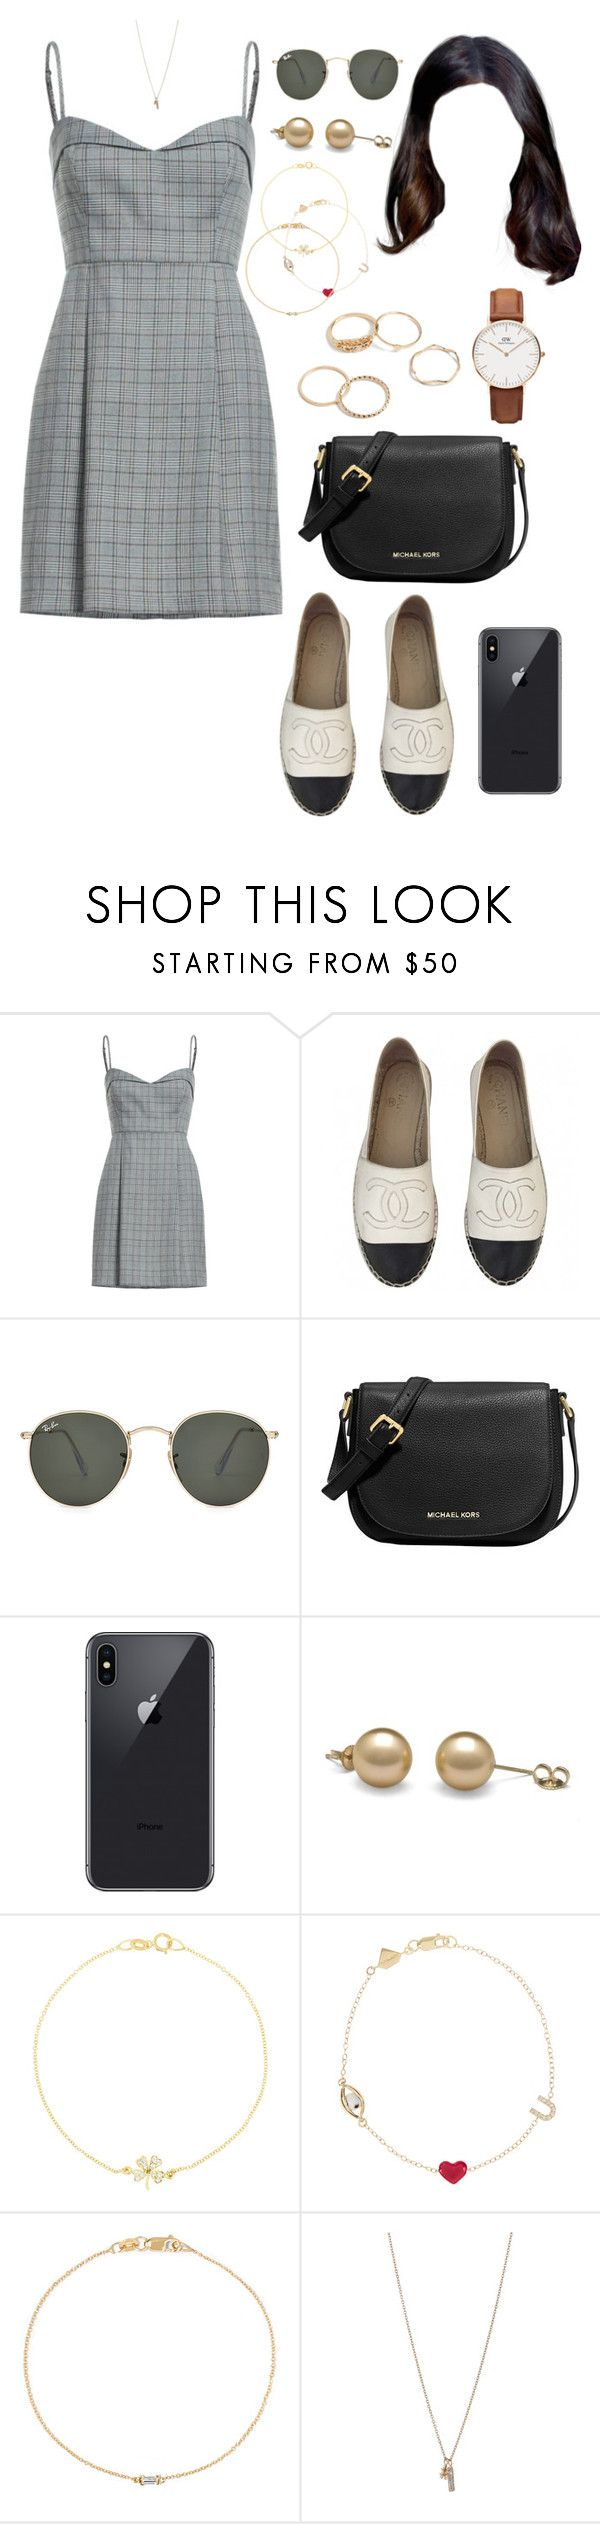 """""""LOS (day/out/OJF)"""" by ittgirl ❤ liked on Polyvore featuring Chanel, Ray-Ban, MICHAEL Michael Kors, Jennifer Meyer Jewelry, Alison Lou, Ileana Makri, Minor Obsessions and Daniel Wellington"""